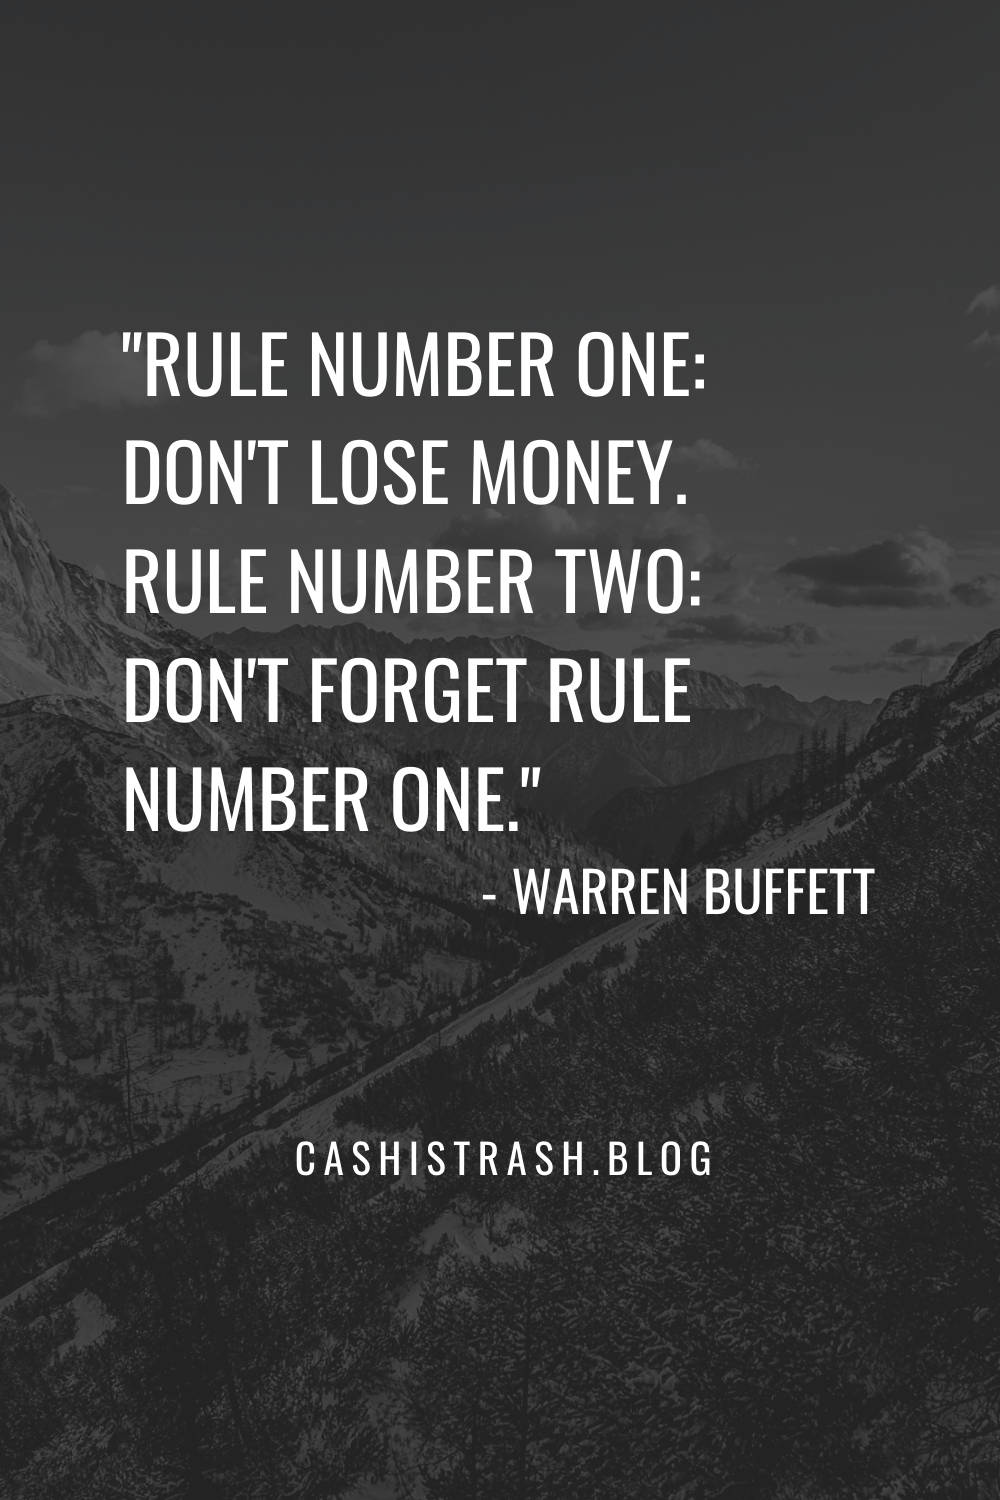 The Golden Rule Of Investing Quotes Famous Quotes Lost Money